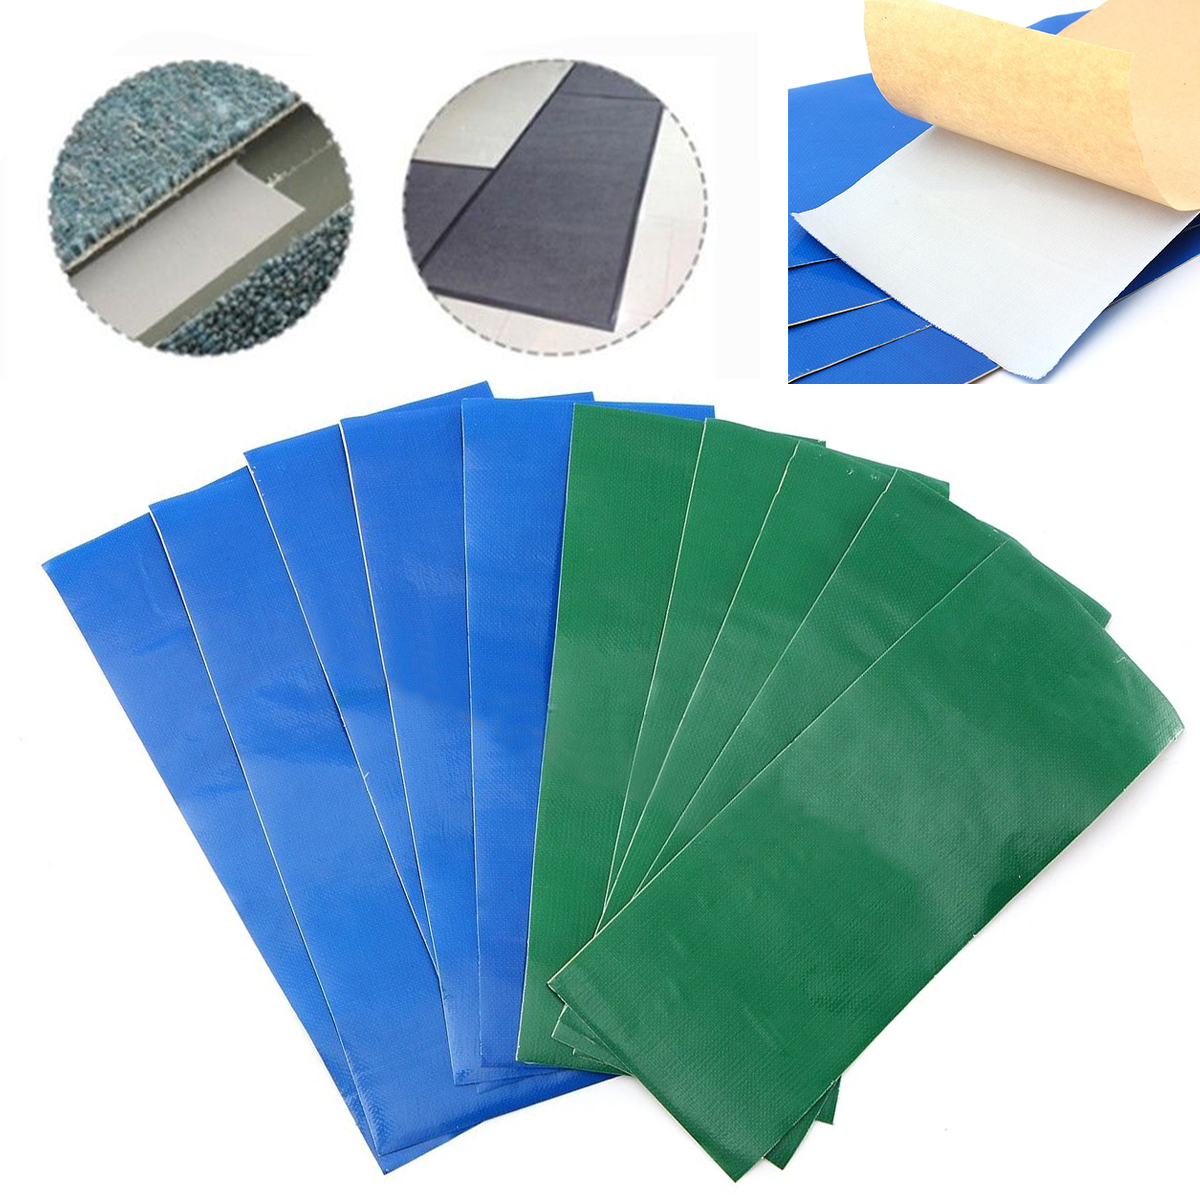 Mayitr 5pcs/lot Self Adhesive Waterproof Stickers Cloth Patches Mend Down Outdoor Tent Repair Tape Patch Tent Repair Accessories